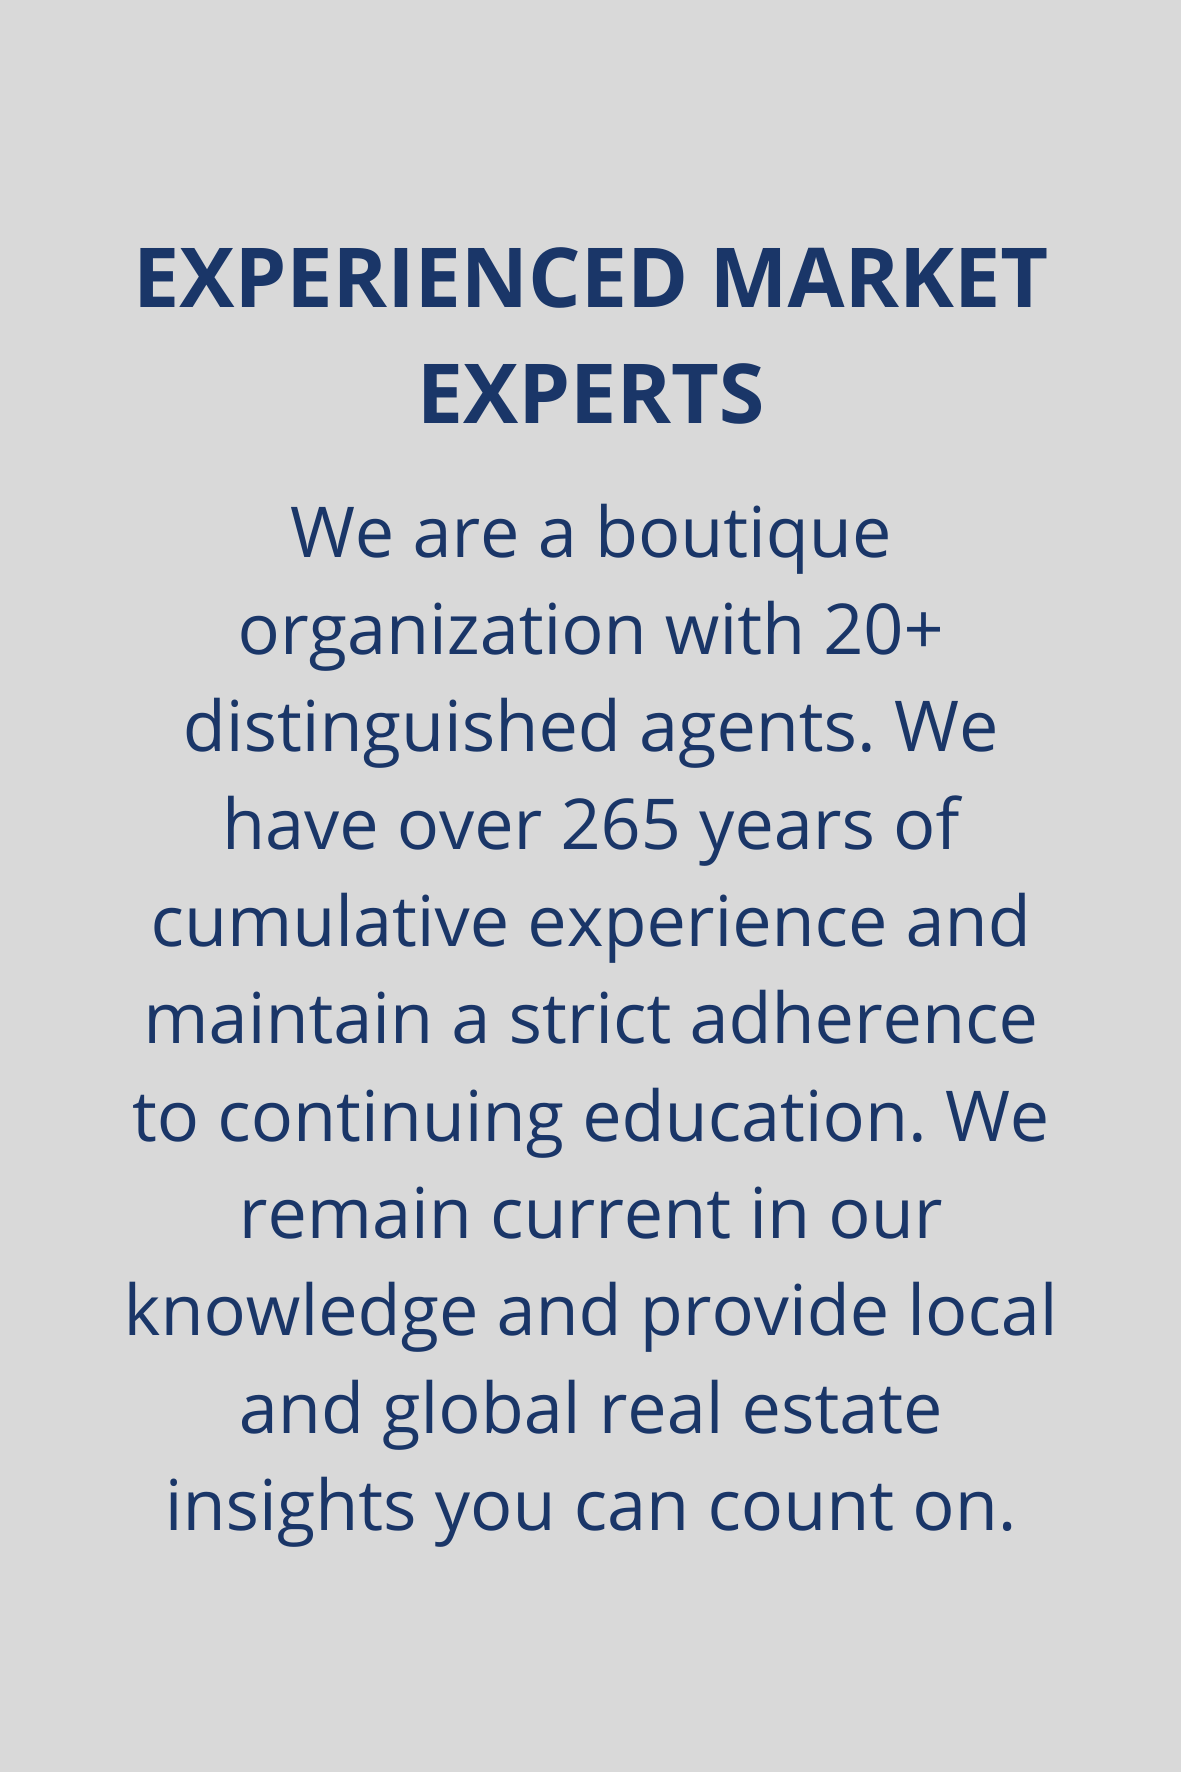 Experienced Market Experts